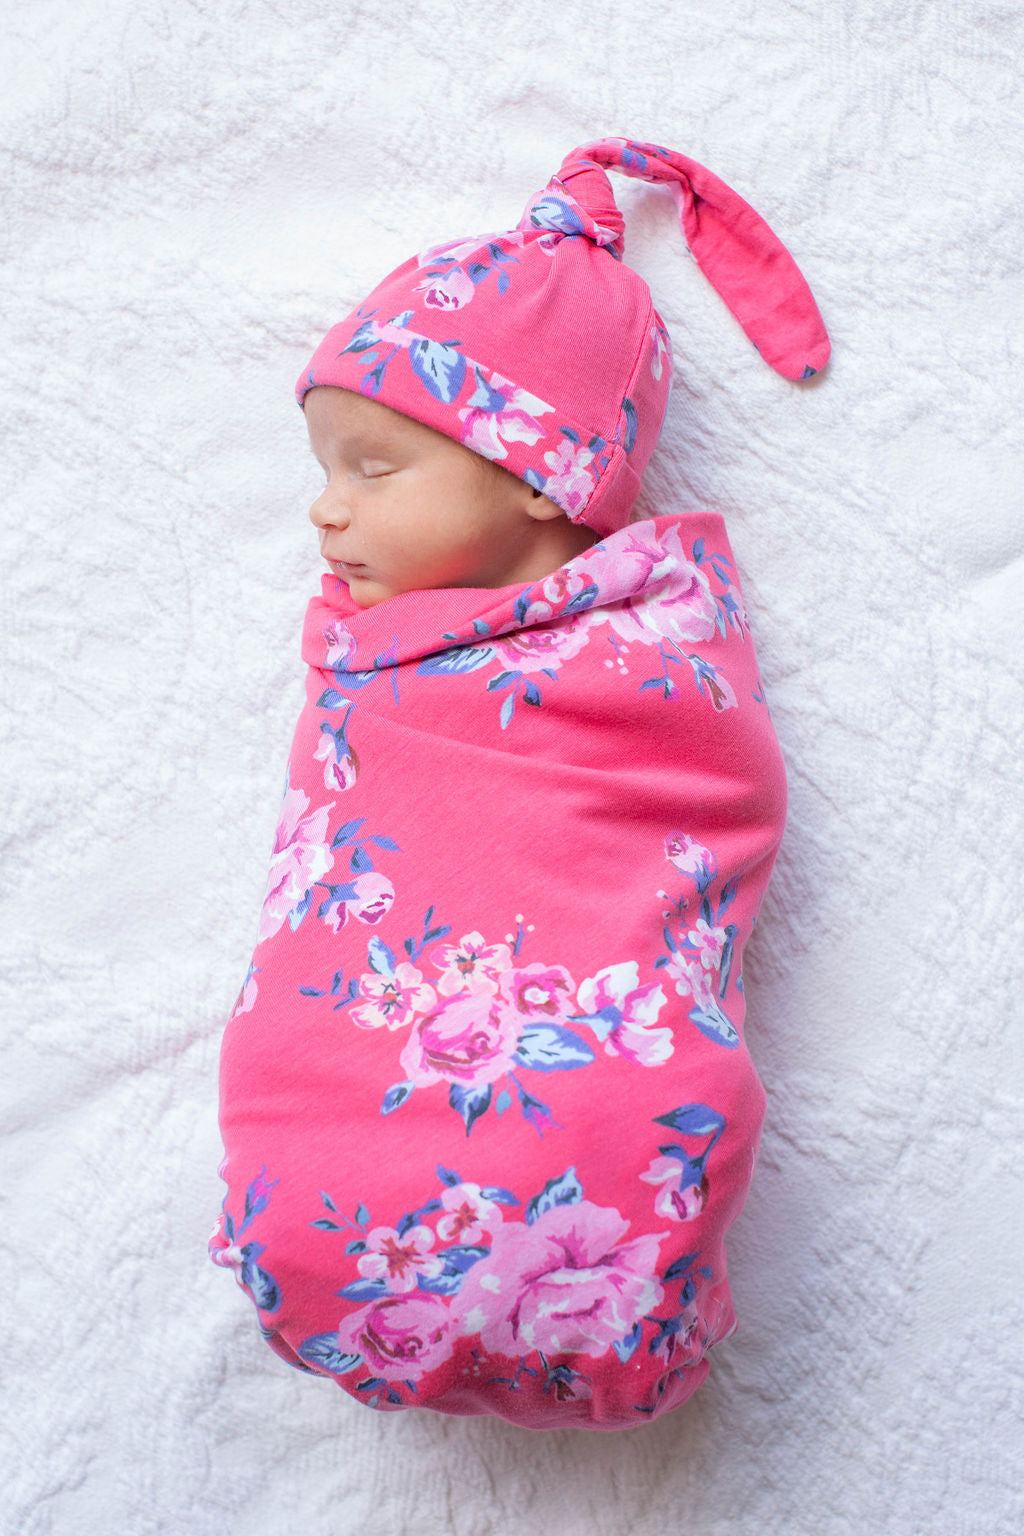 Rose printed swaddle - double-lined and ultra soft for the newborn!